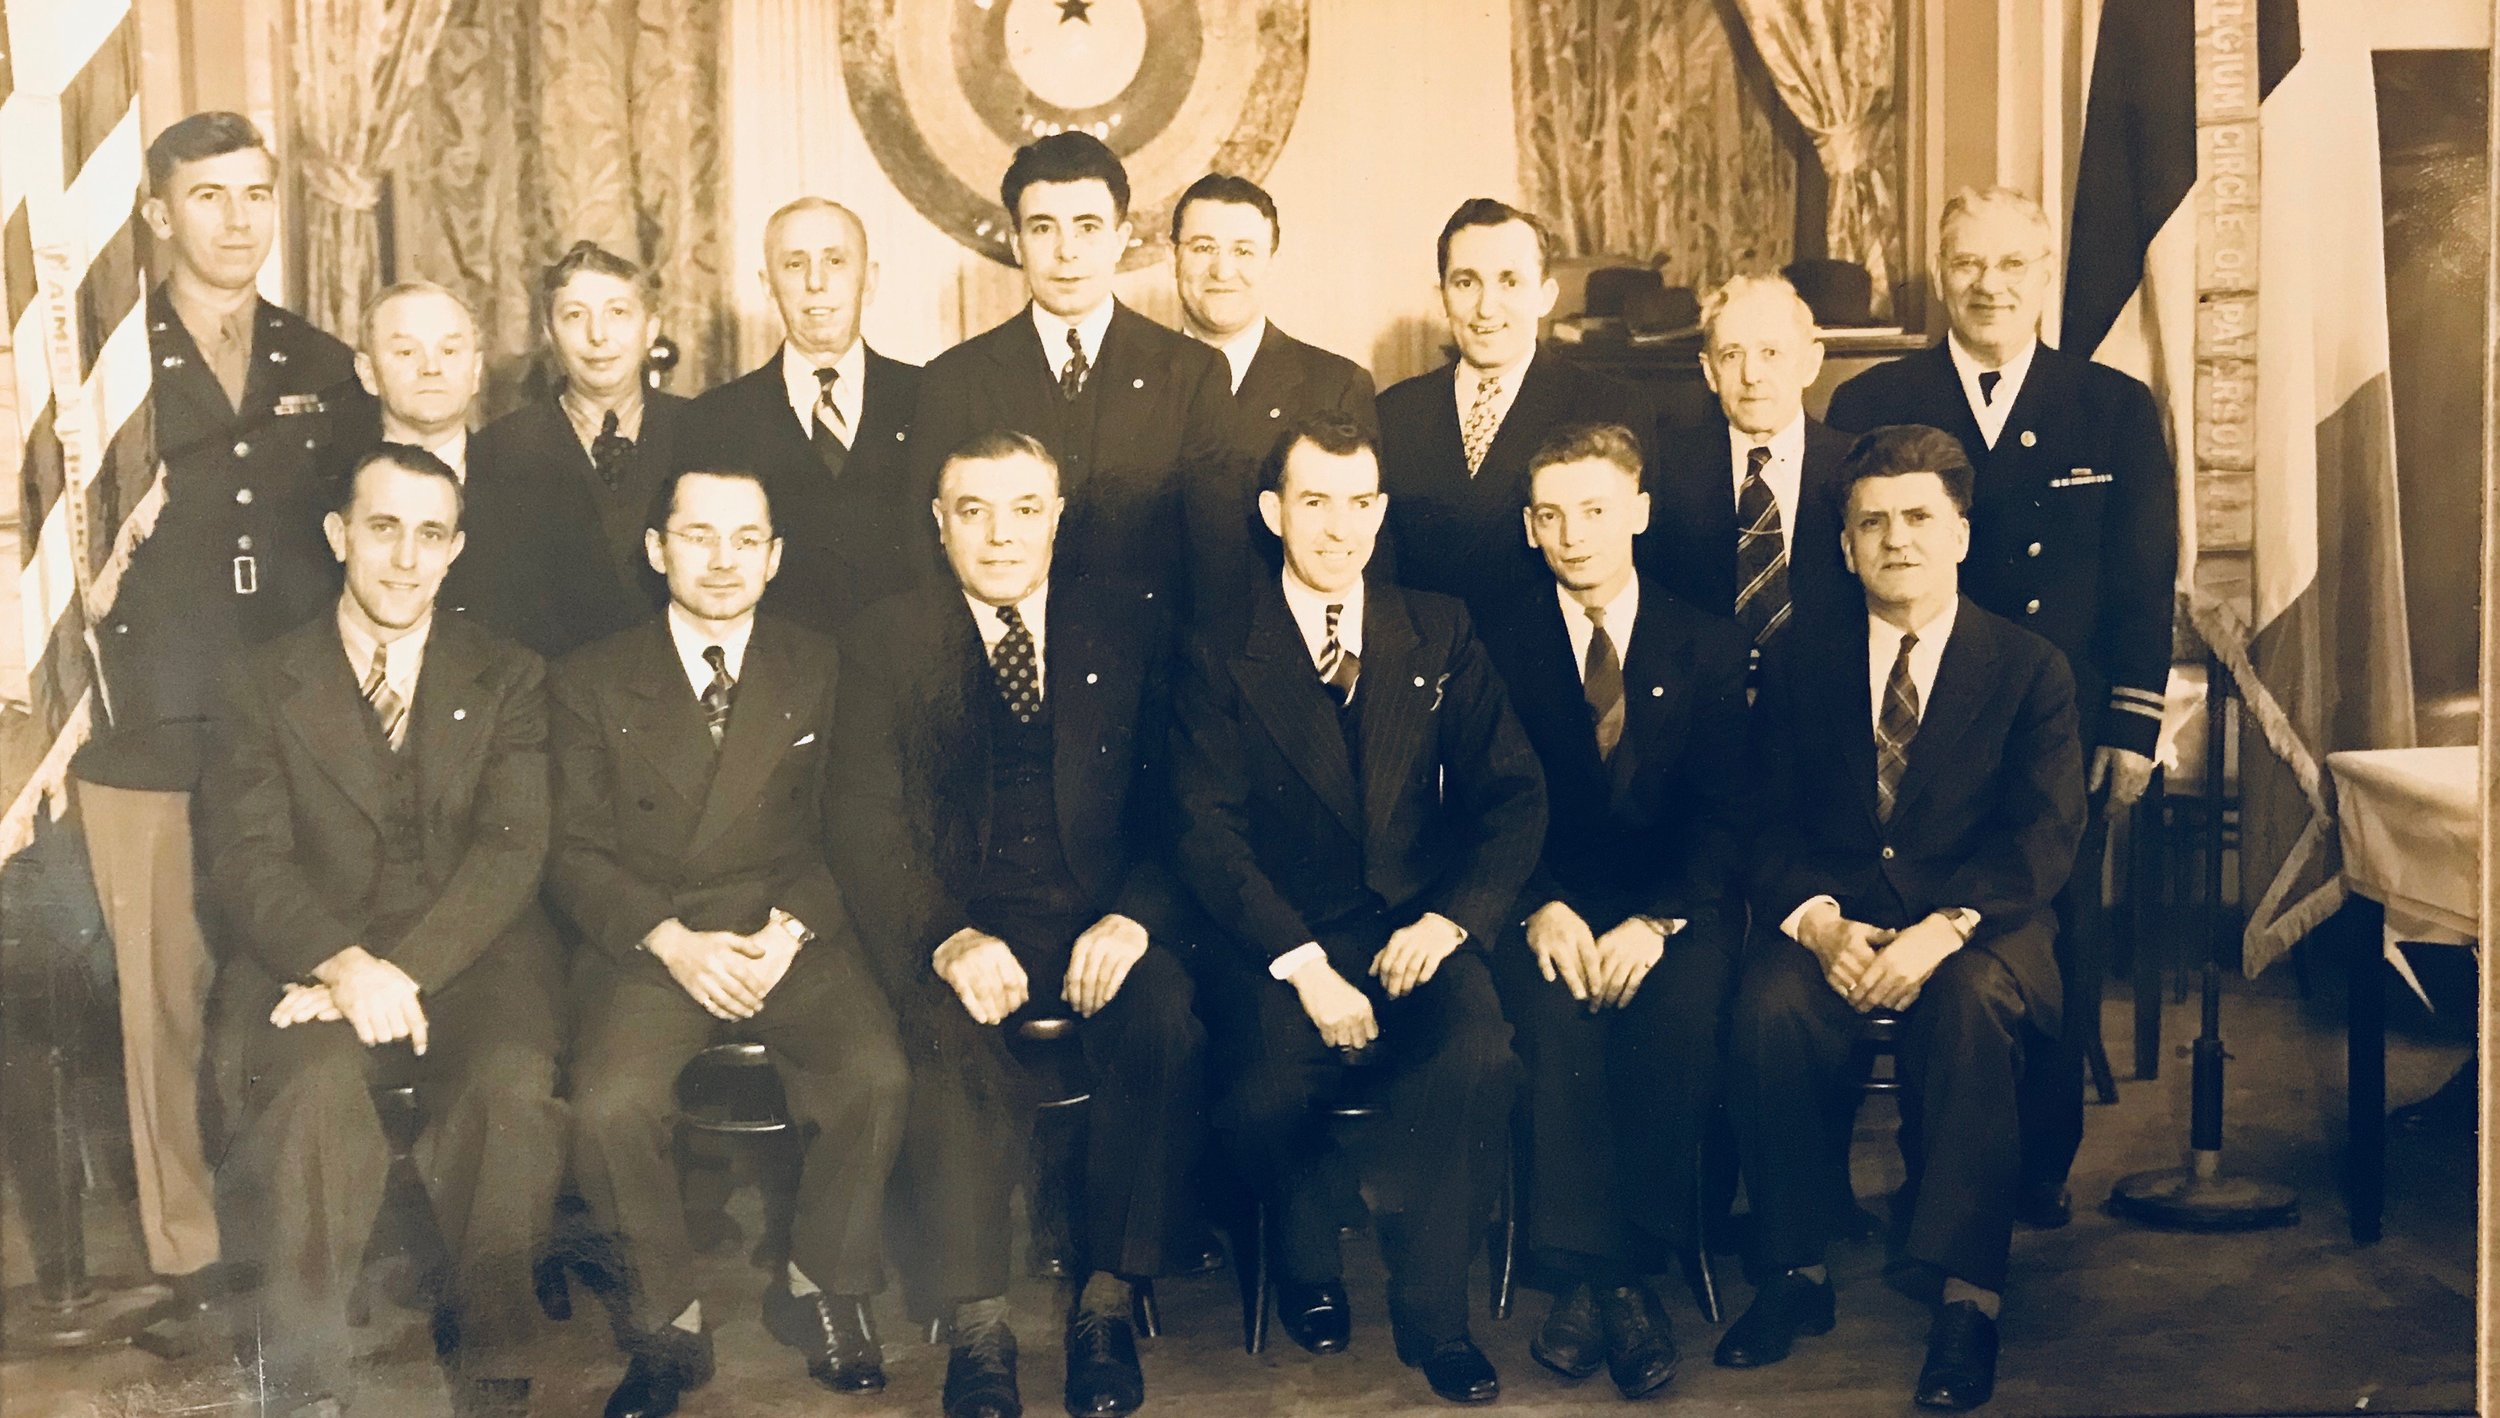 The Belgian Circle of Paterson, New Jersey from the 1950s. Grandpa's in the back row, center, next to the guy who looks like Albert Camus.